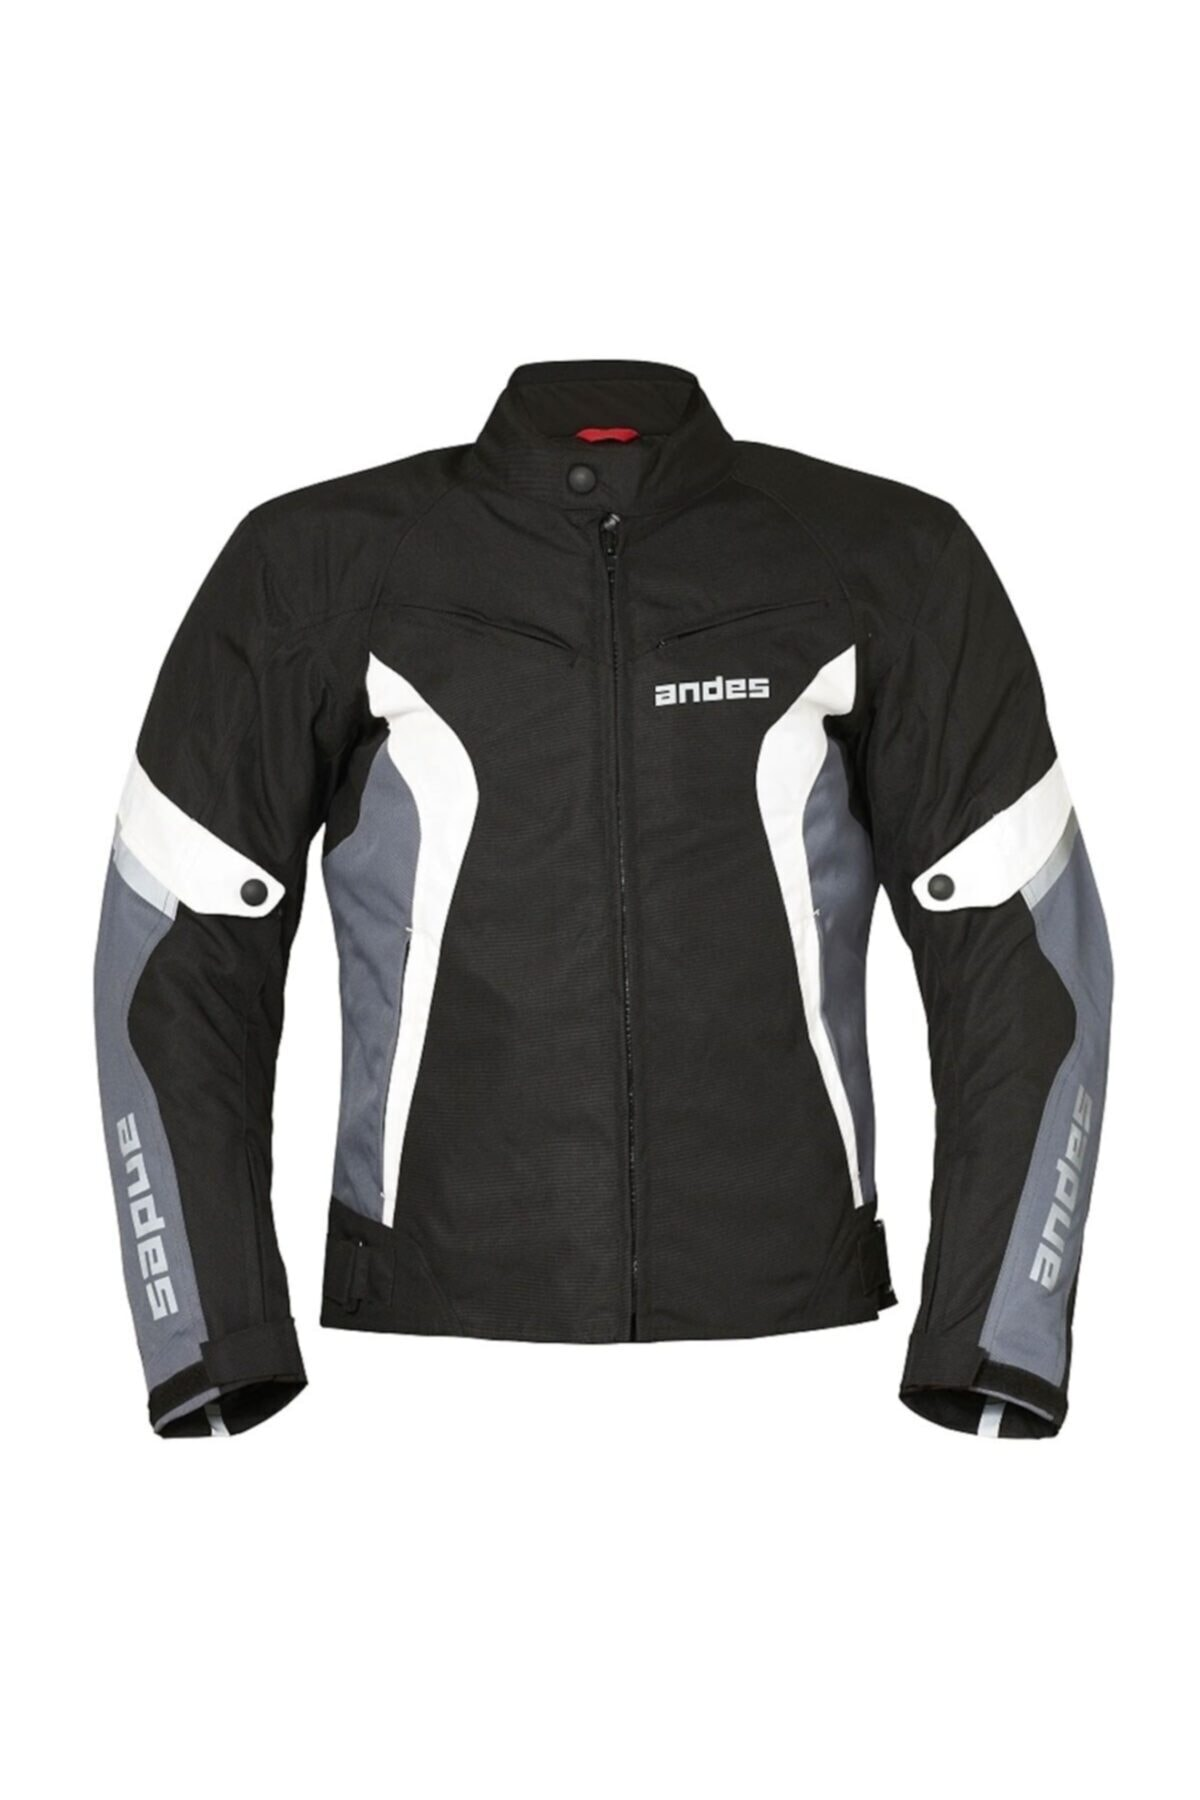 Andes Concord Sports Fabric Jacket Motosiklet Montu 1